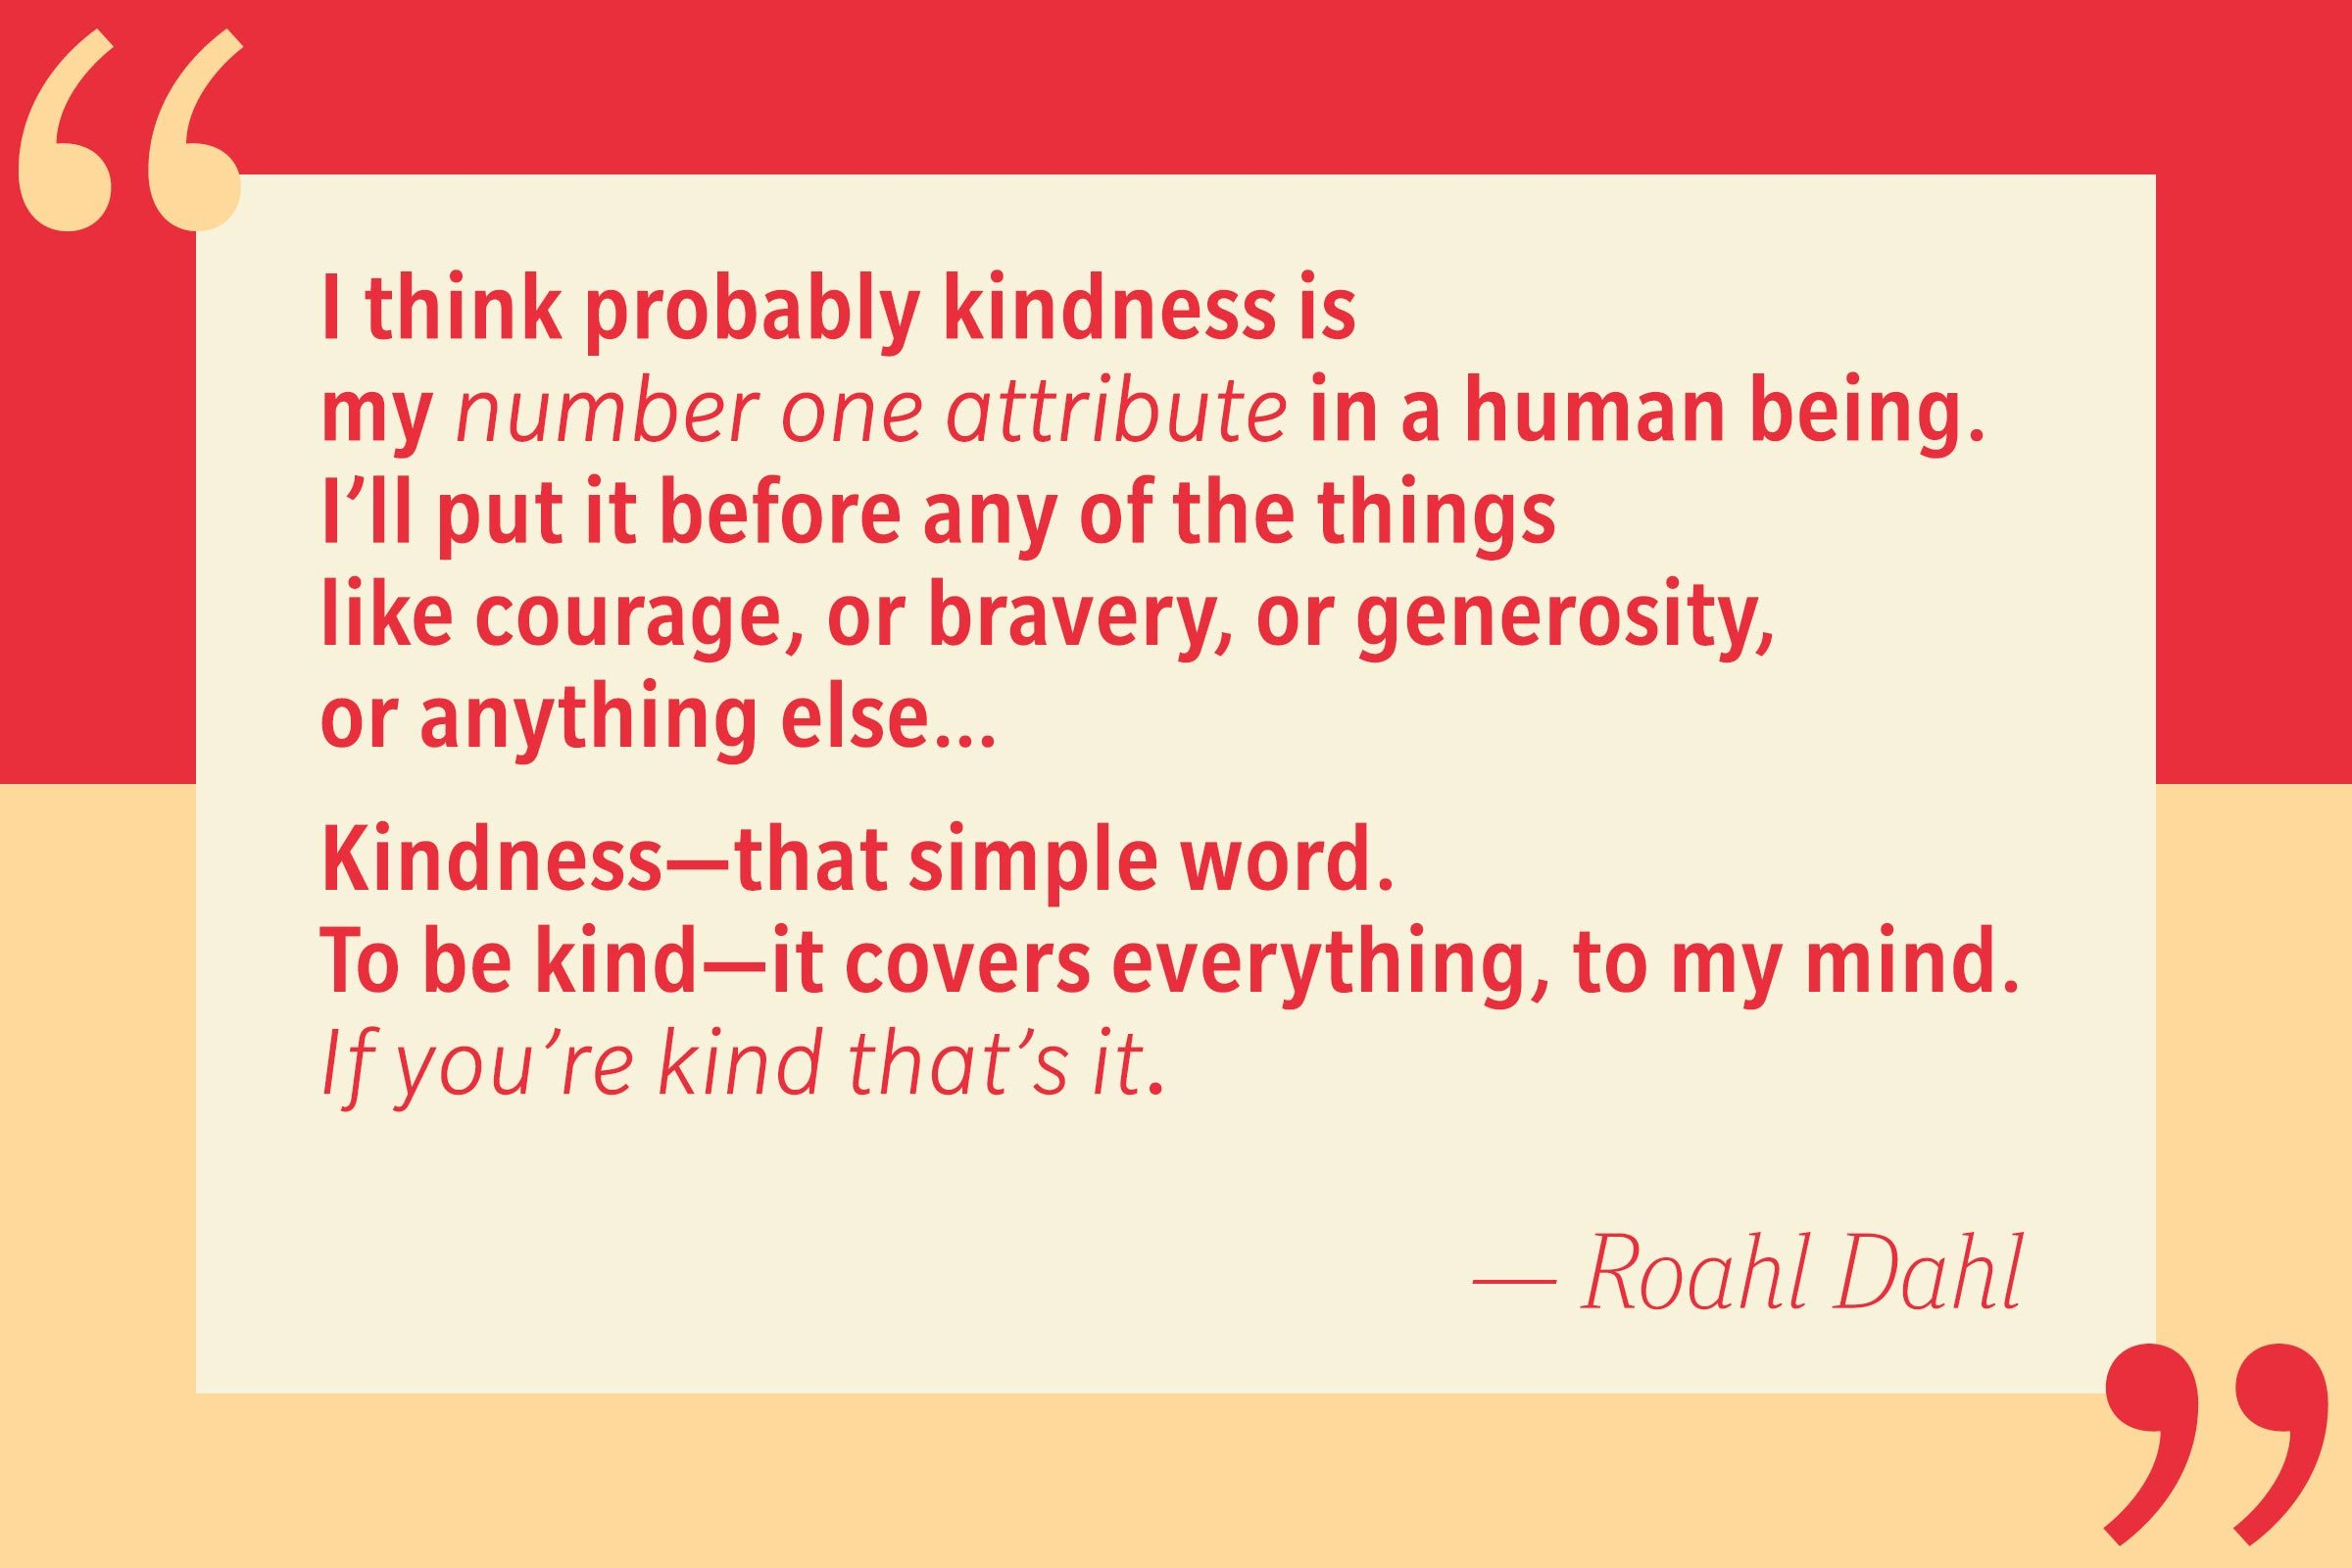 I think probably kindness is my number one attribute in a human being. I'll put it before any of the things like courage, or bravery, or generosity, or anything else… Kindness—that simple word. To be kind—it covers everything, to my mind. If you're kind that's it. — Roahl Dahl